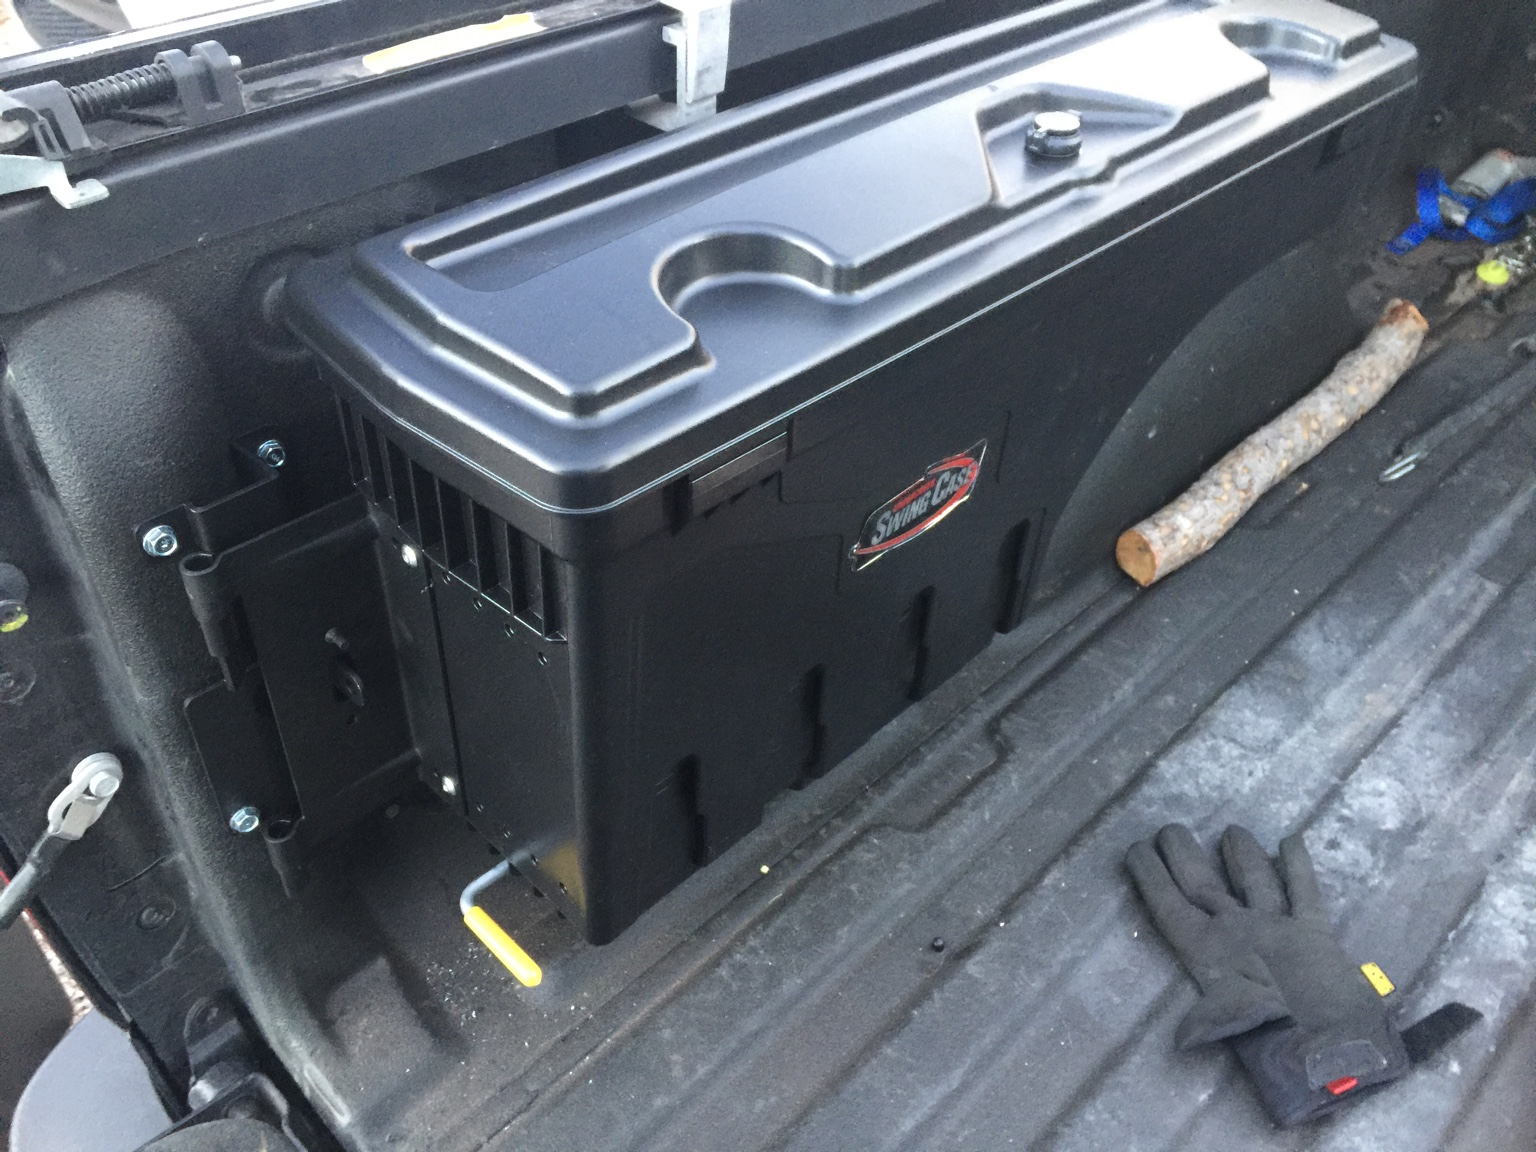 Def Delete Duramax >> What did you do to your Sierra/Silvy today? - Page 3157 - Chevy and GMC Duramax Diesel Forum